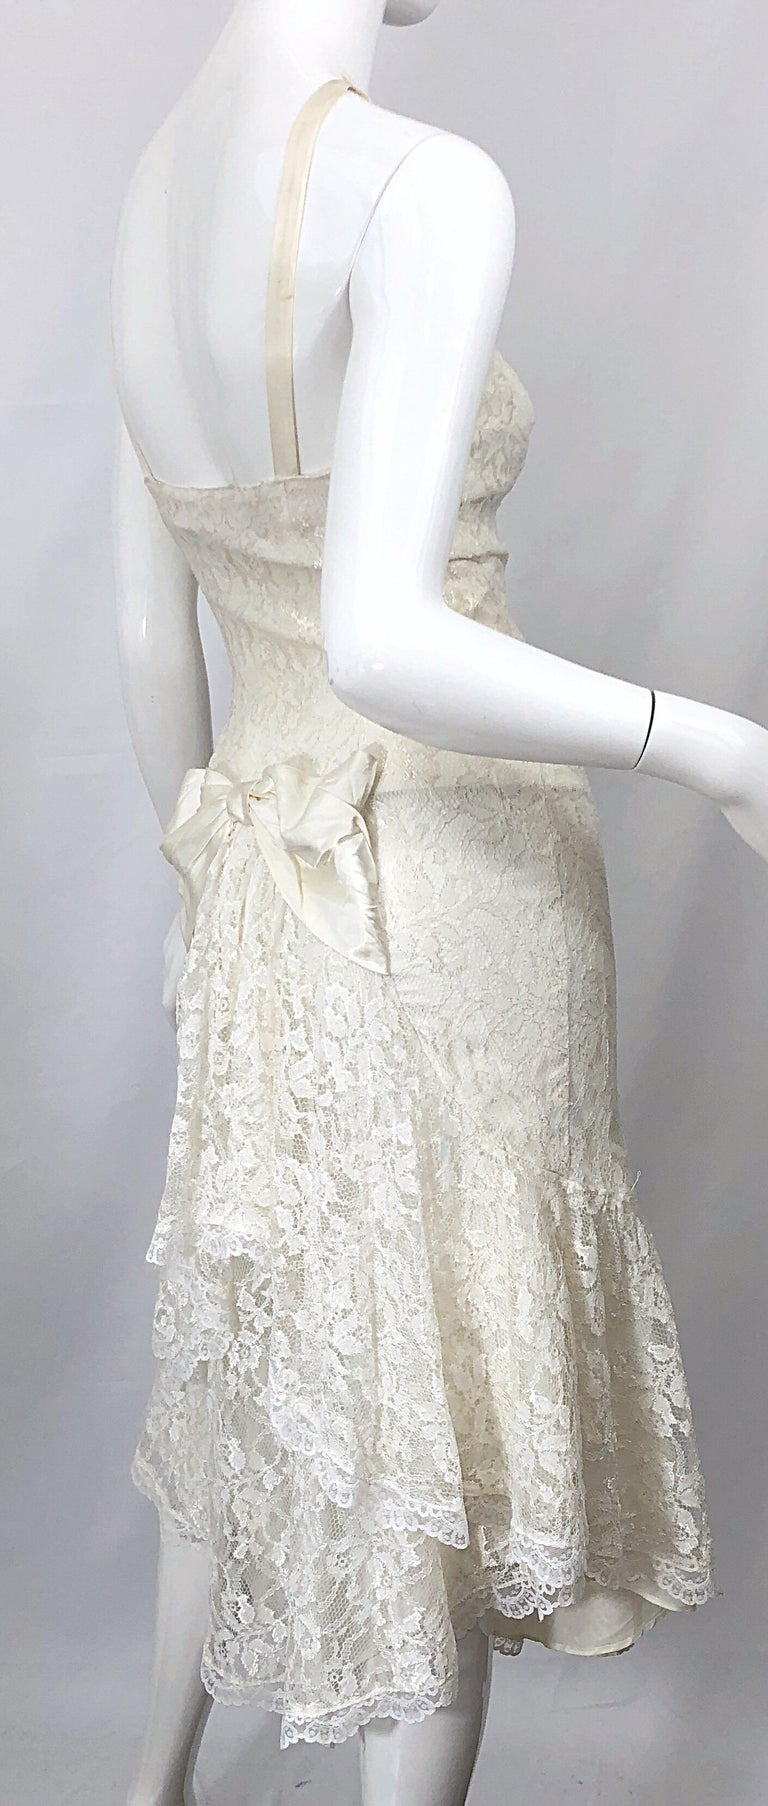 1980s Samir Ivory White Lace Handkerchief Hem Embroidered Vintage 80s Dress For Sale 3